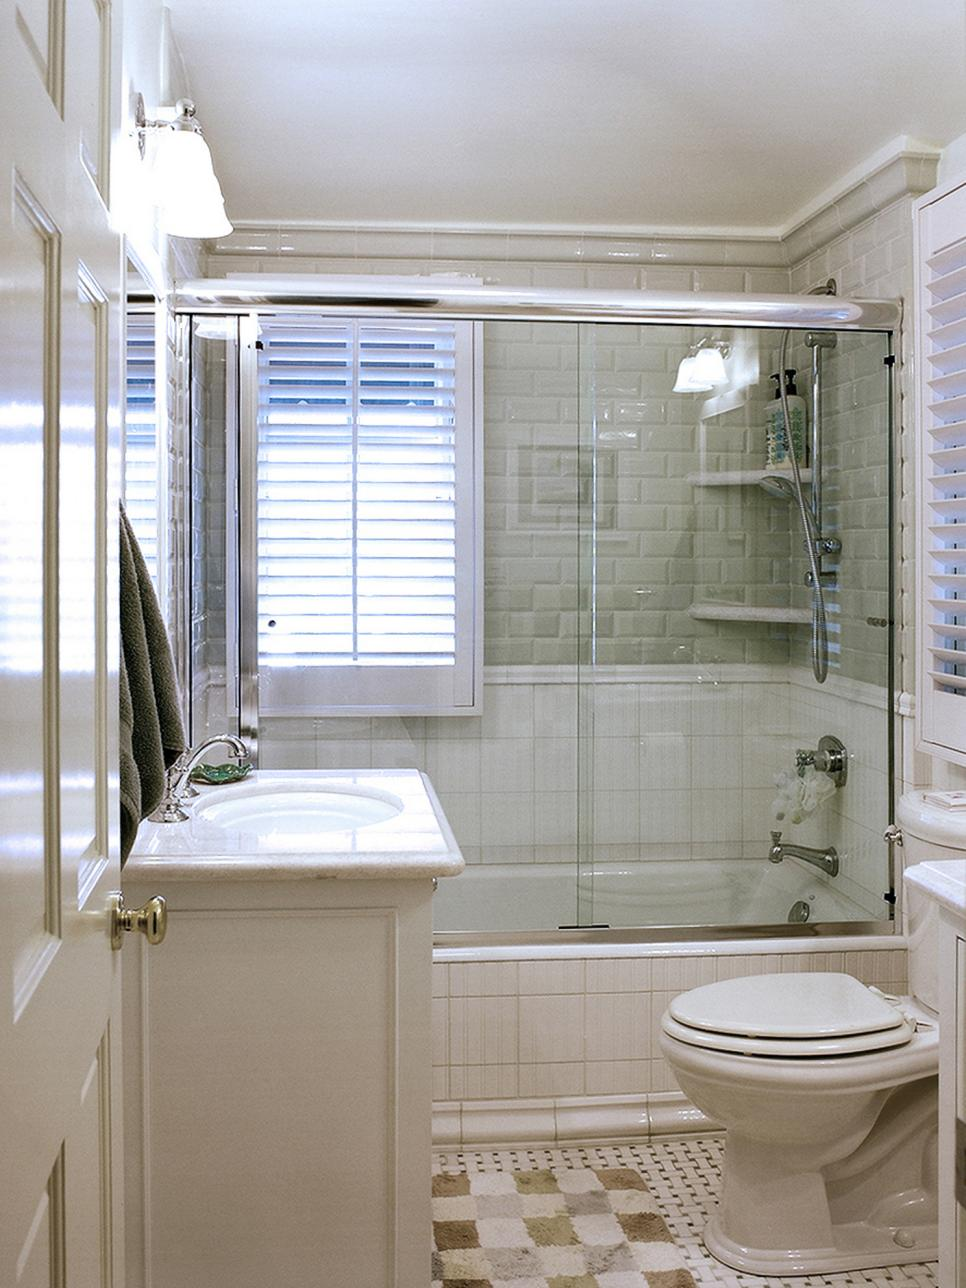 Full bathrooms hgtv for Full bathroom remodel